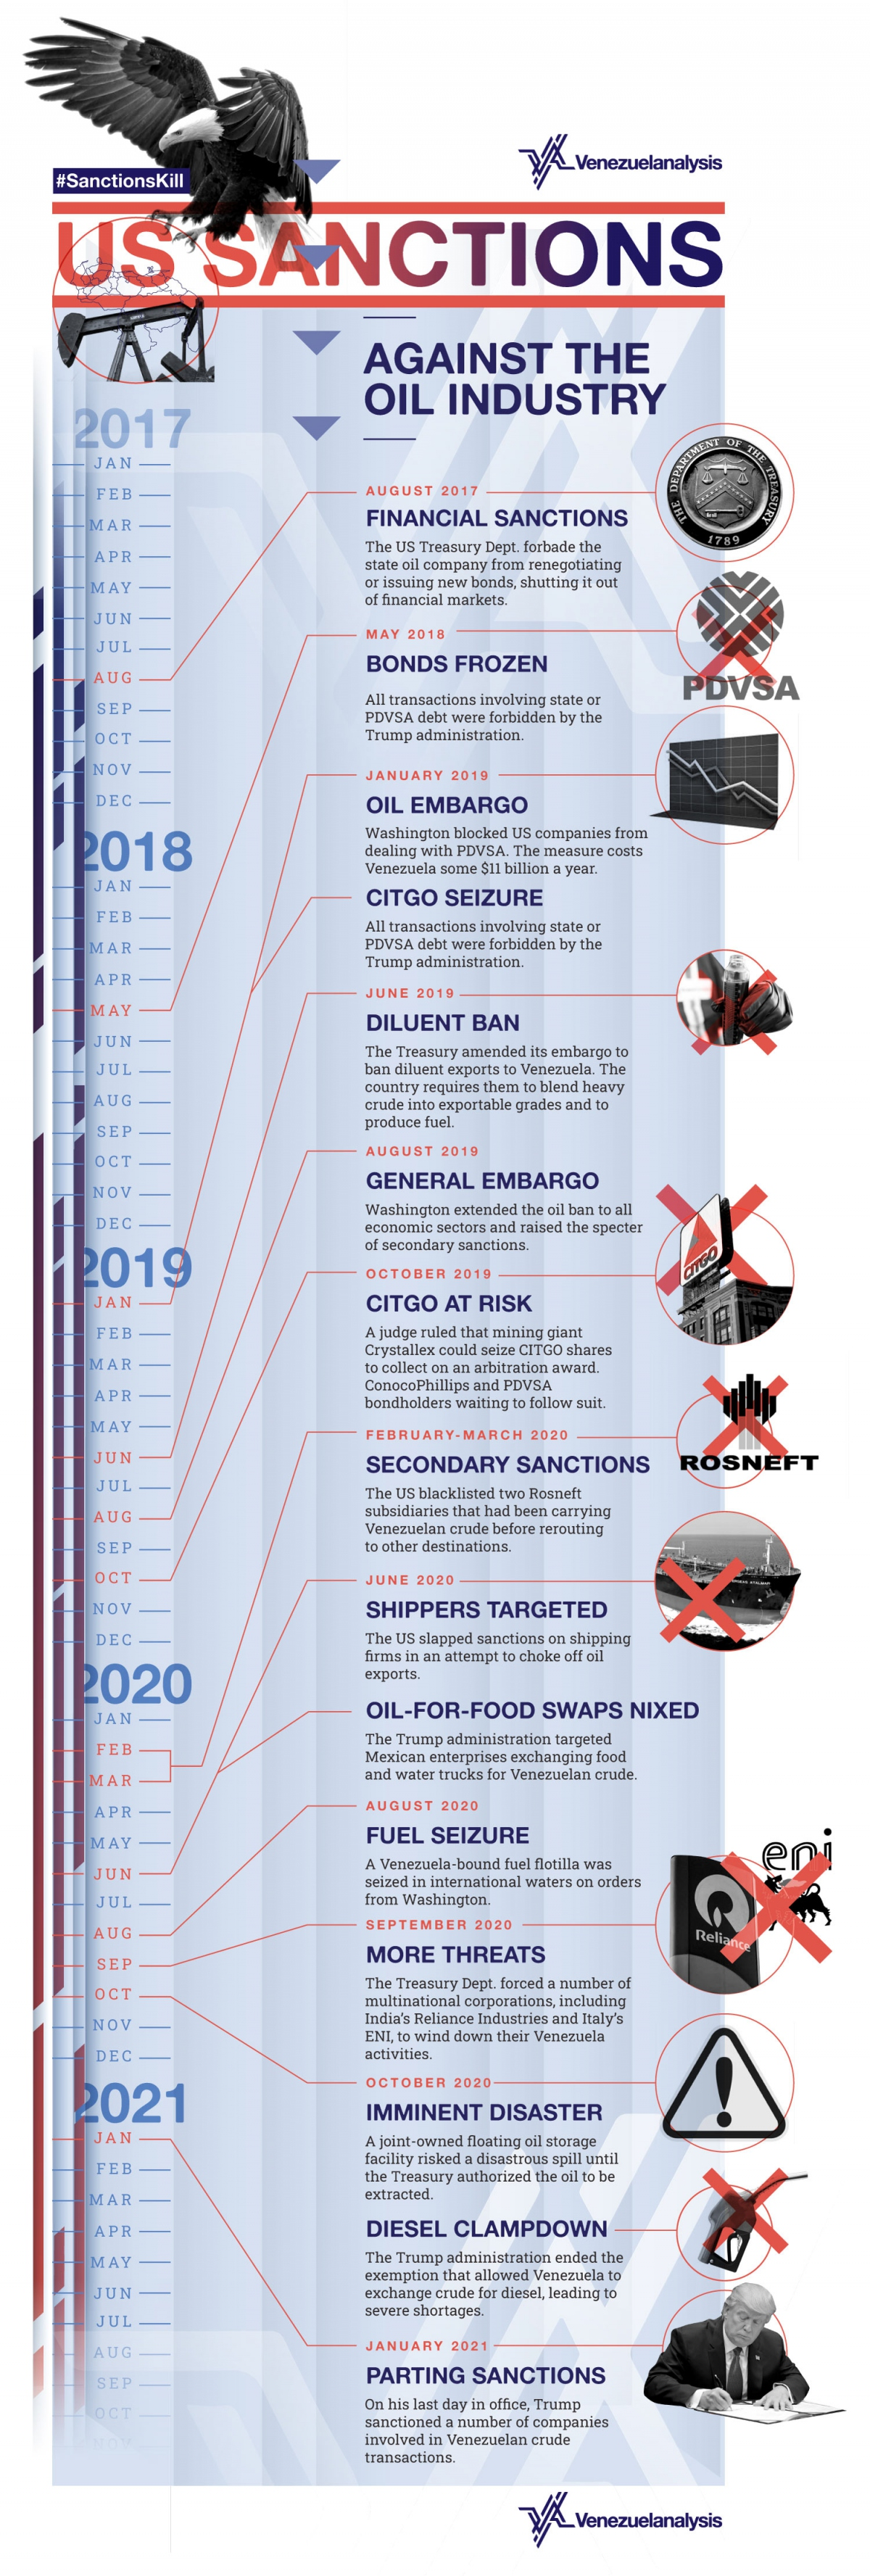 A detailed timeline of the crushing measures levied by the US Treasury Department against Venezuela's most important industry. (Venezuelanalysis / Utopix)